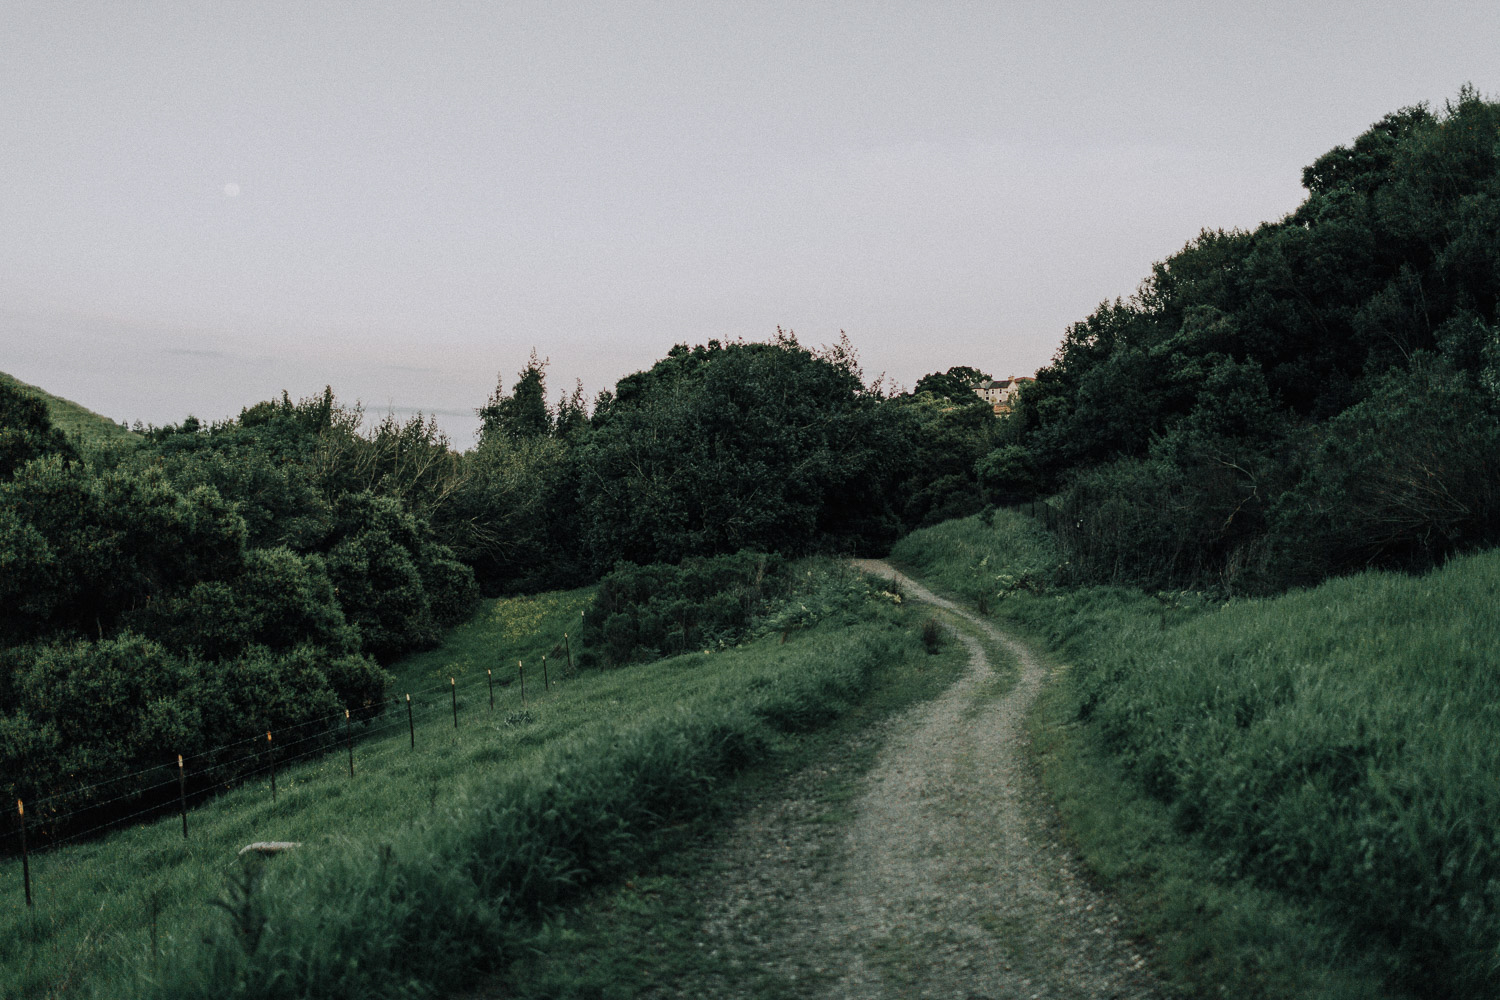 Image of trail covered by green grass